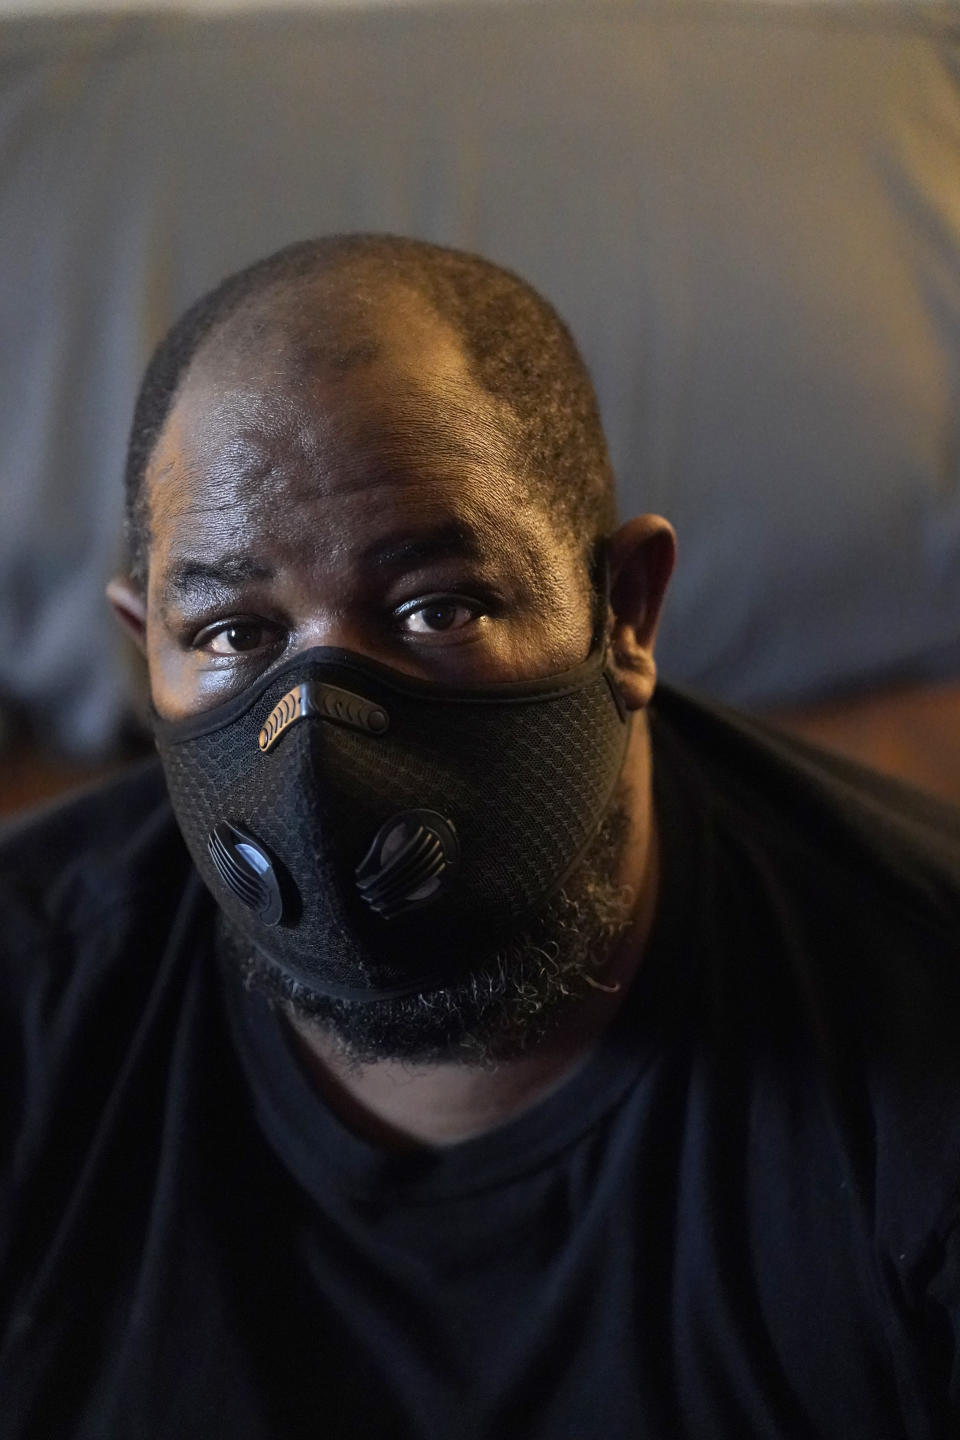 Freddie Davis poses for a photo in his apartment, Monday, June 21, 2021, in Miami. With the federal eviction moratorium extended through July, the focus has turned to getting rental assistance out to millions of tenants. Davis, a truck driver who lost his job during the pandemic and saw his rent increase from $875 to $1,400-a-month. He is $7,000 behind on rent and fears his monthly $1,038 disability check after he lost a leg to diabetes won't be enough to find another place. He applied for rental assistance but his landlord refused to take it. (AP Photo/Wilfredo Lee)